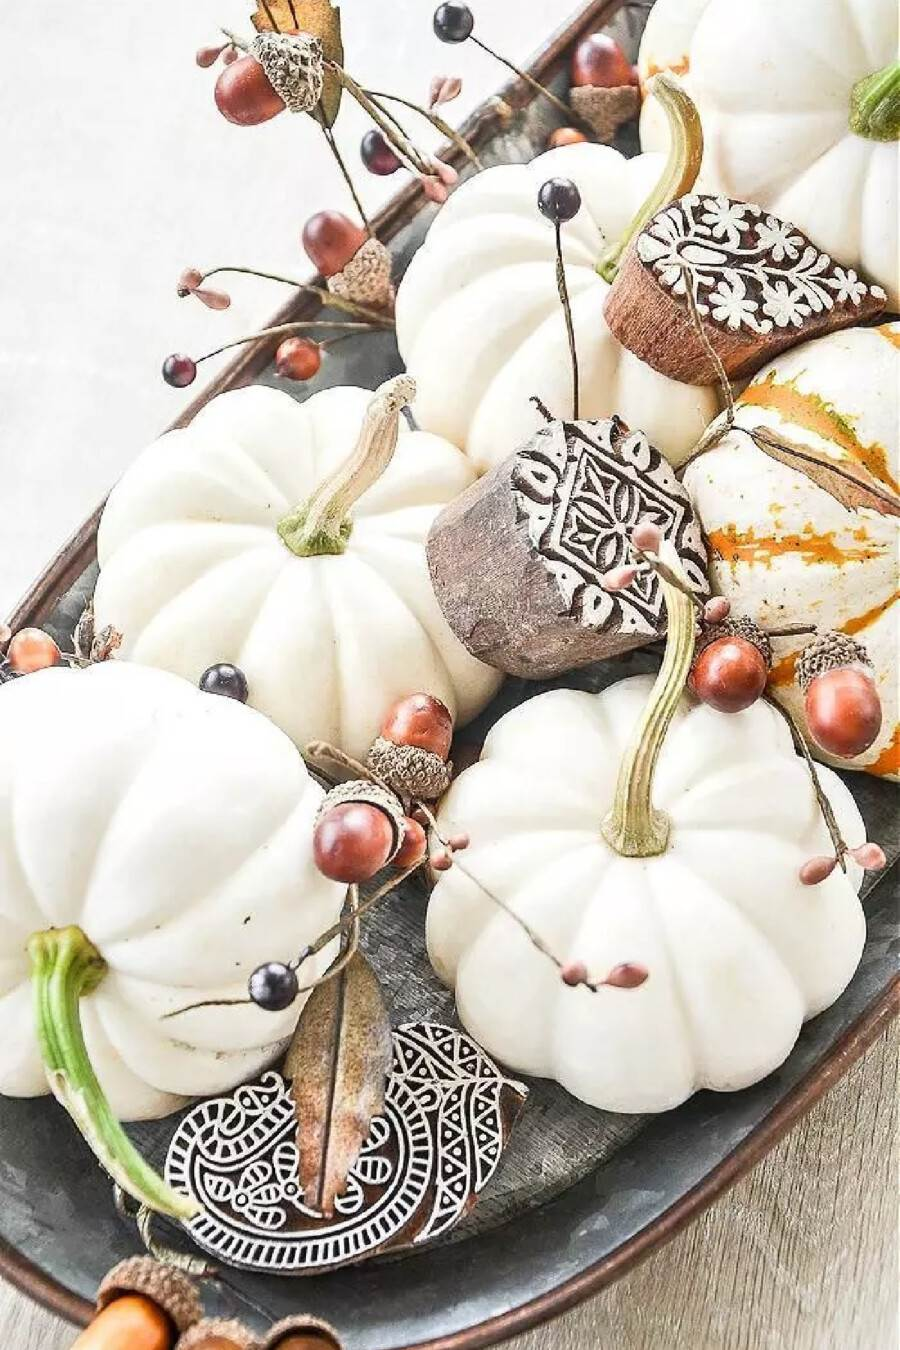 PIN FOR FALL DECORATING POST